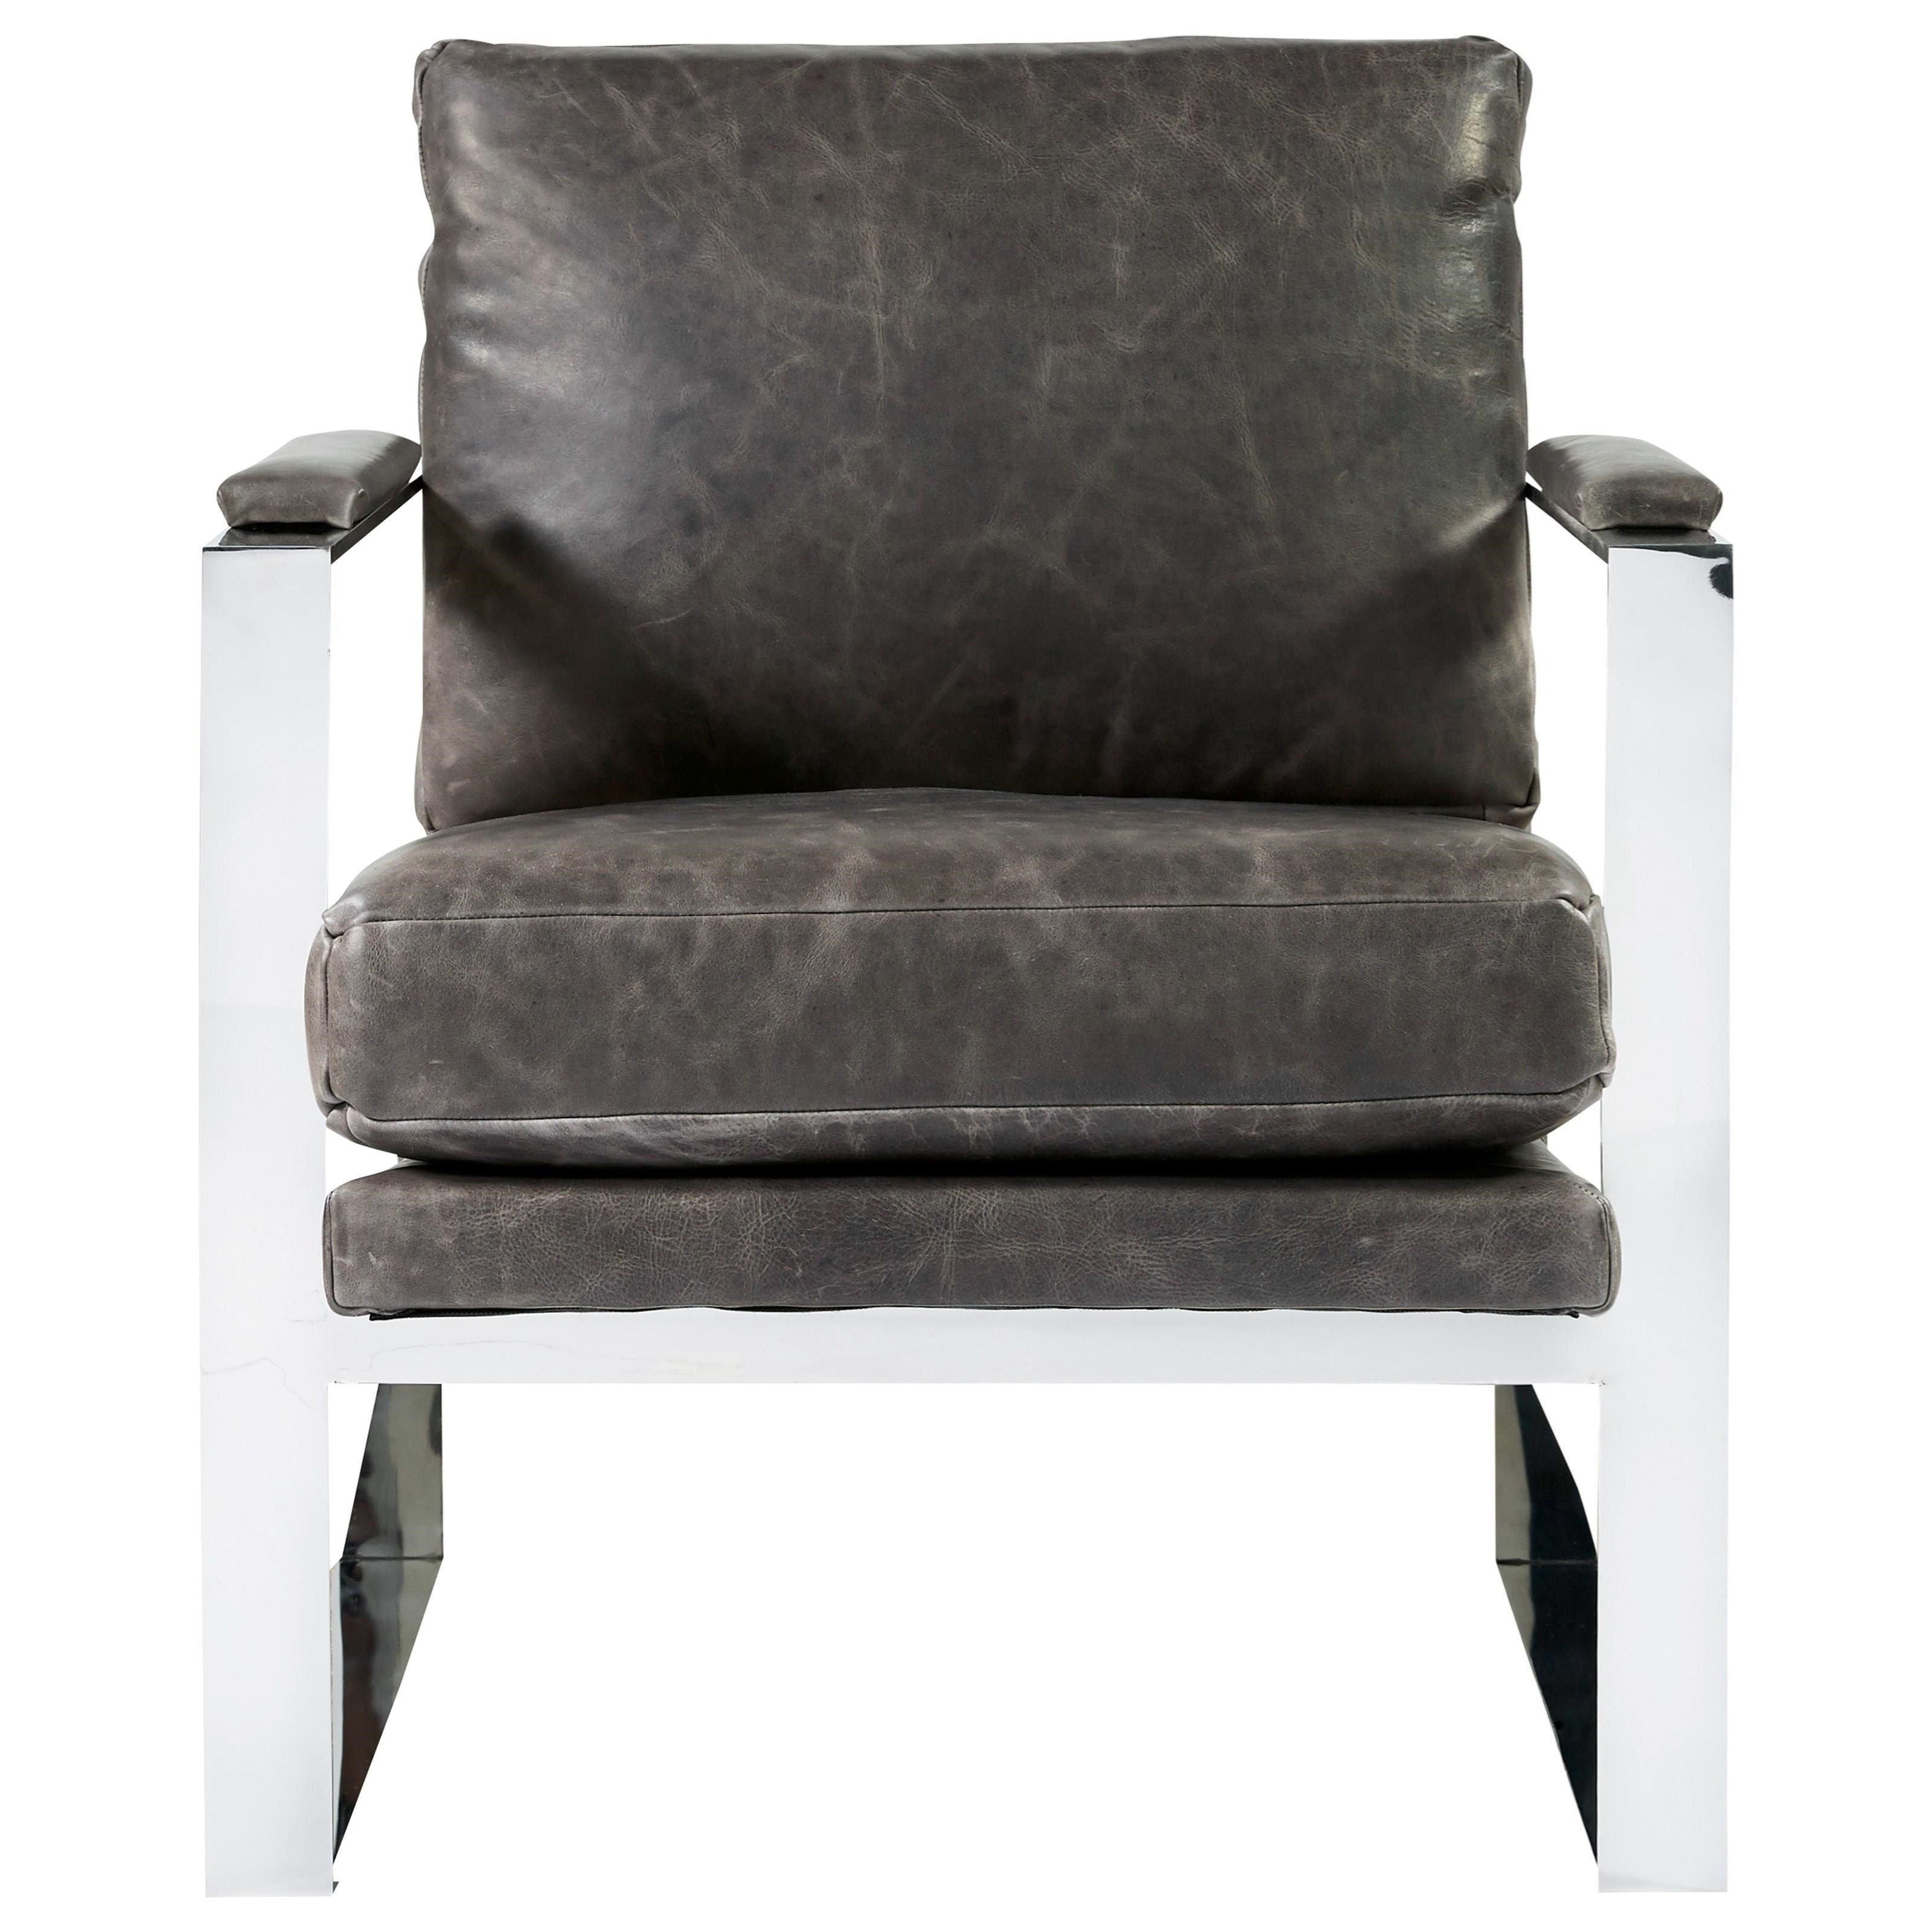 Accents Corbin Accent Chair by Universal at Upper Room Home Furnishings